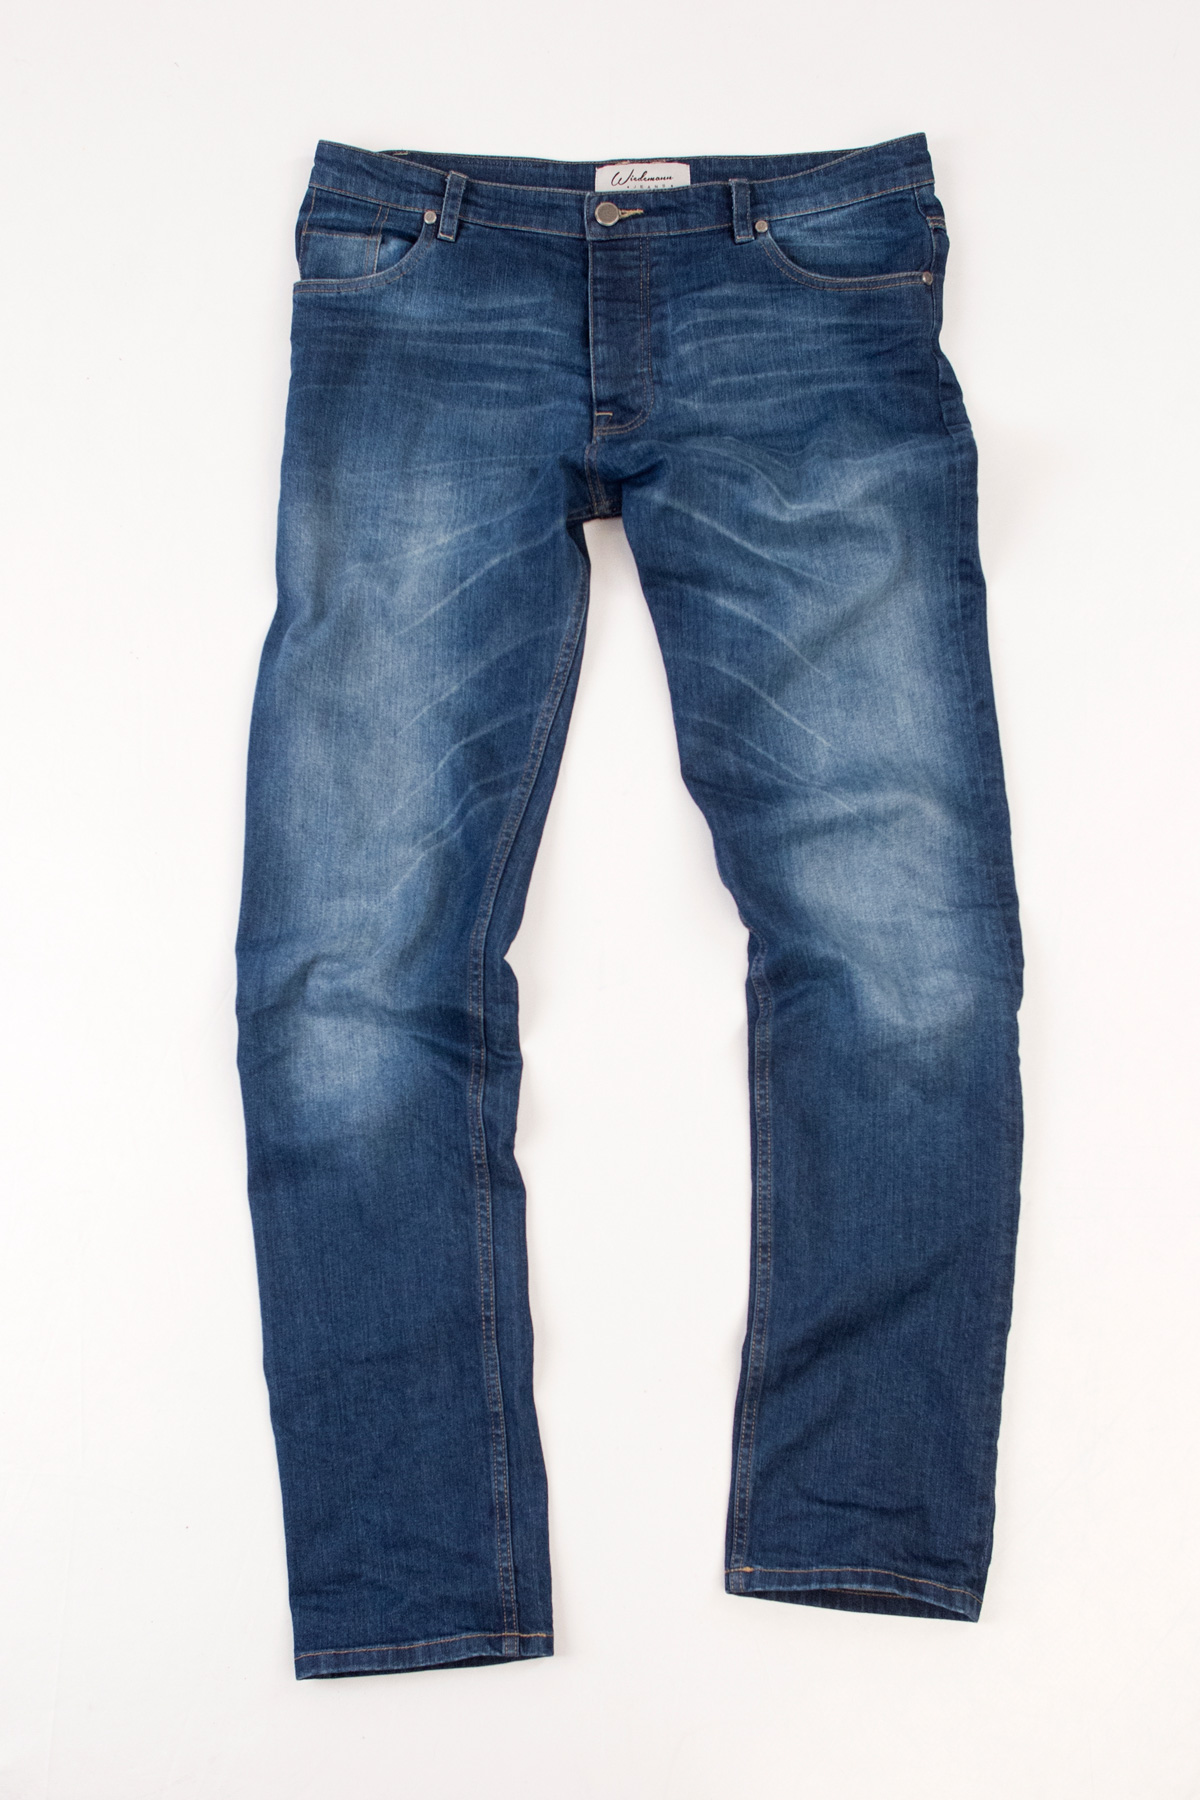 Tall tapered skinny jeansWiedemann Jeans Official website